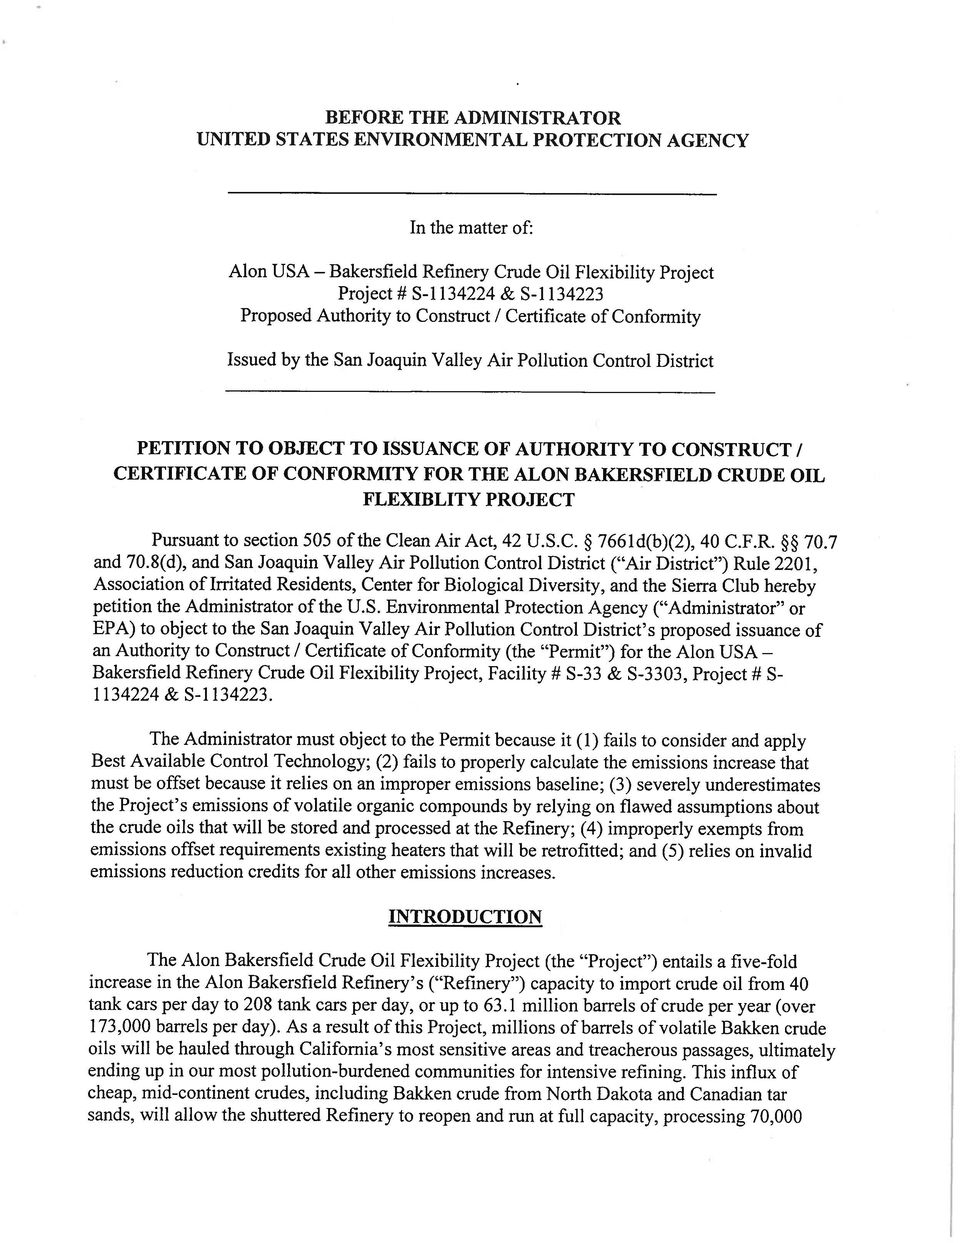 ALON BAKERSFIELD CRUDE OIL FLEXIBLITY PROJECT Pursuant to section 505 of the Clean Air Act, 42 U.S.C. 766 ld(b)(2), 40 C.F.R. ~ 70.7 and 70.